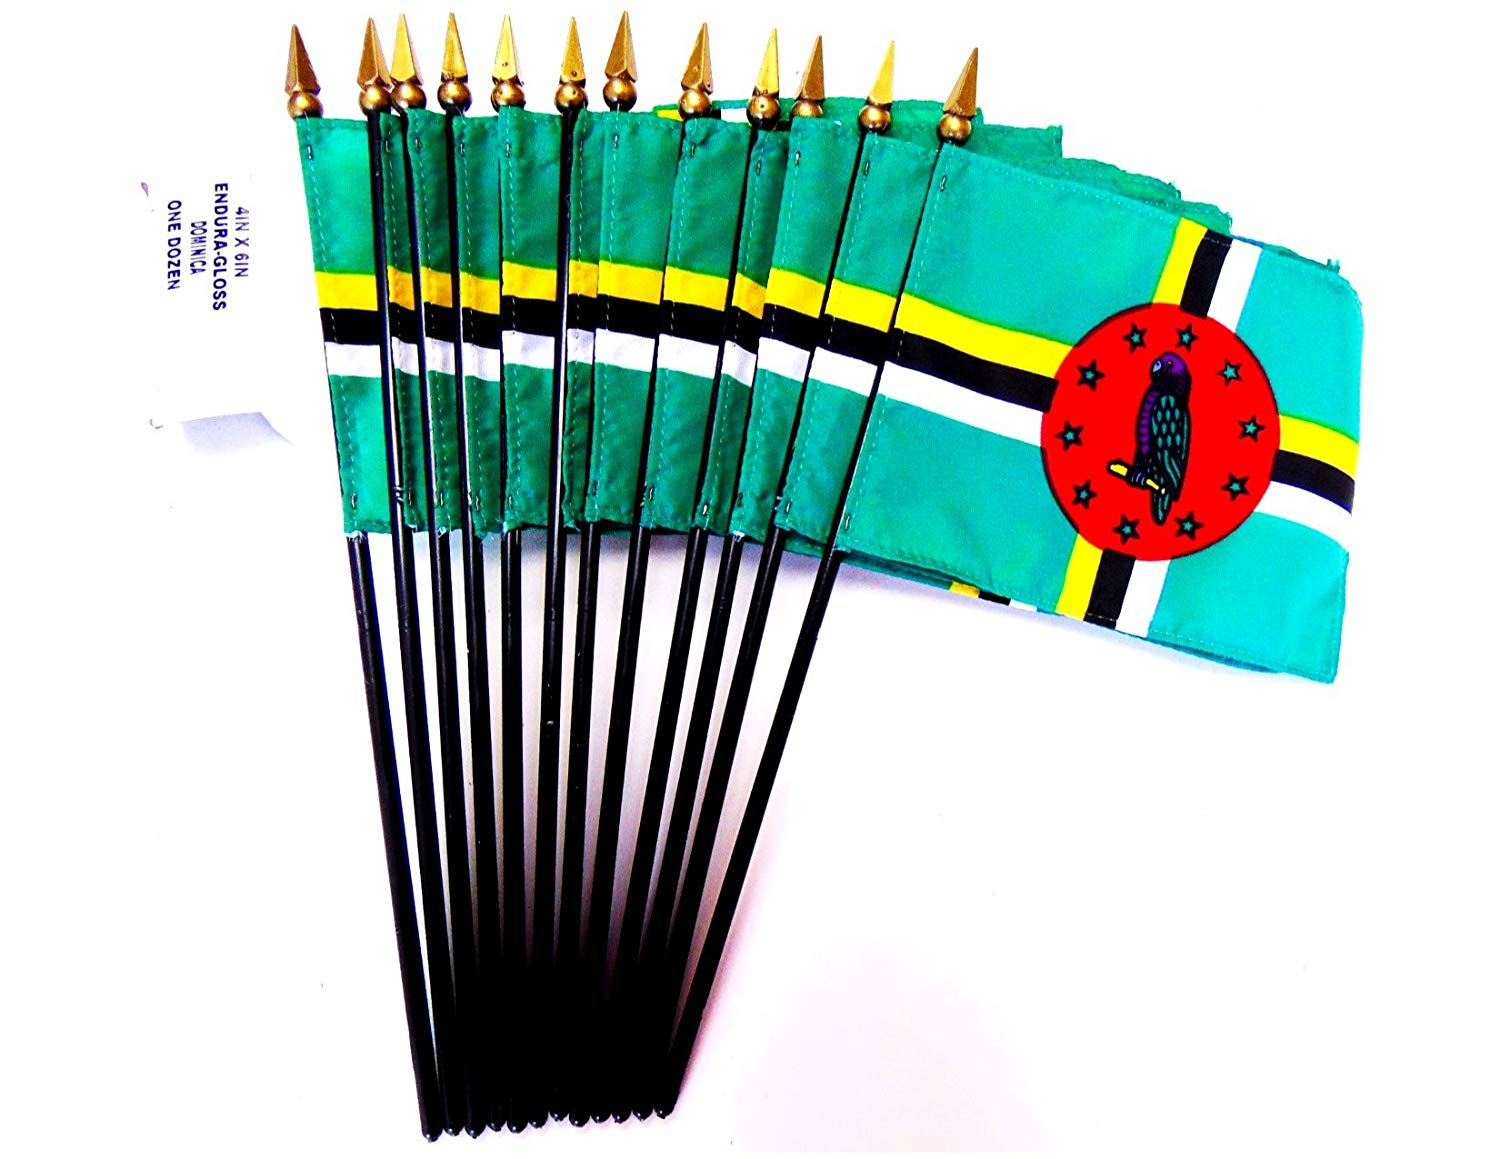 """MADE IN USA!! Box of 12 Dominica 4""""x6"""" Miniature Desk & Table Flags; 12 American Made Small Mini Dominican Flags in a Custom Made Cardboard Box Specifically Made for These Flags"""